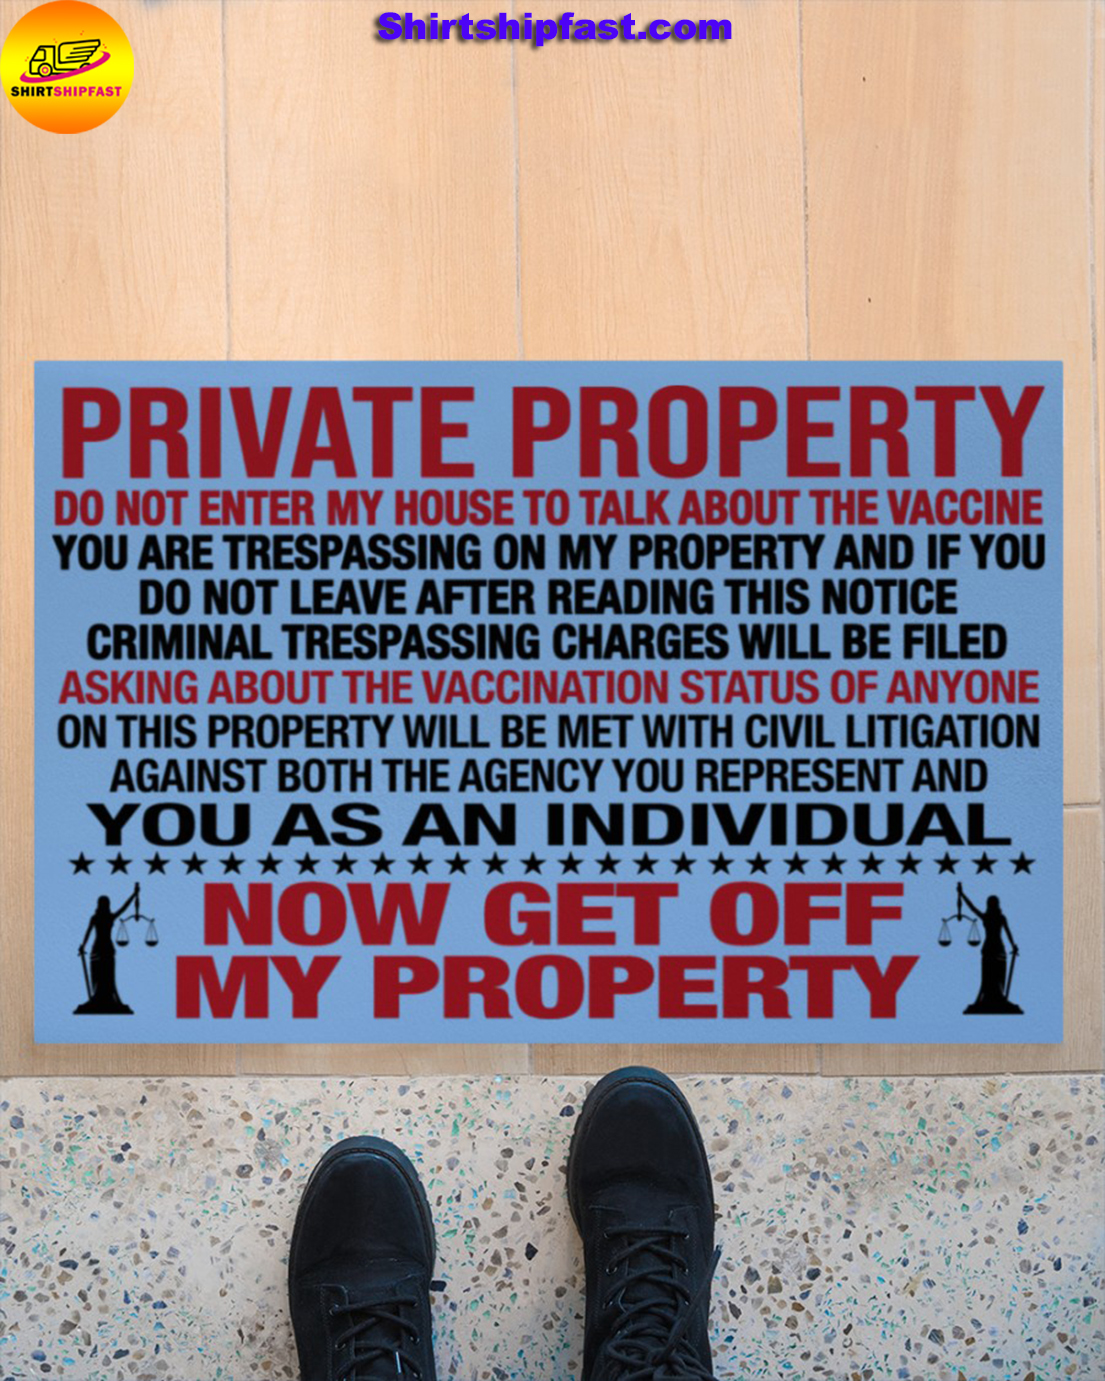 Private property do not enter my house to talk about the vaccine doormat - Picture 1